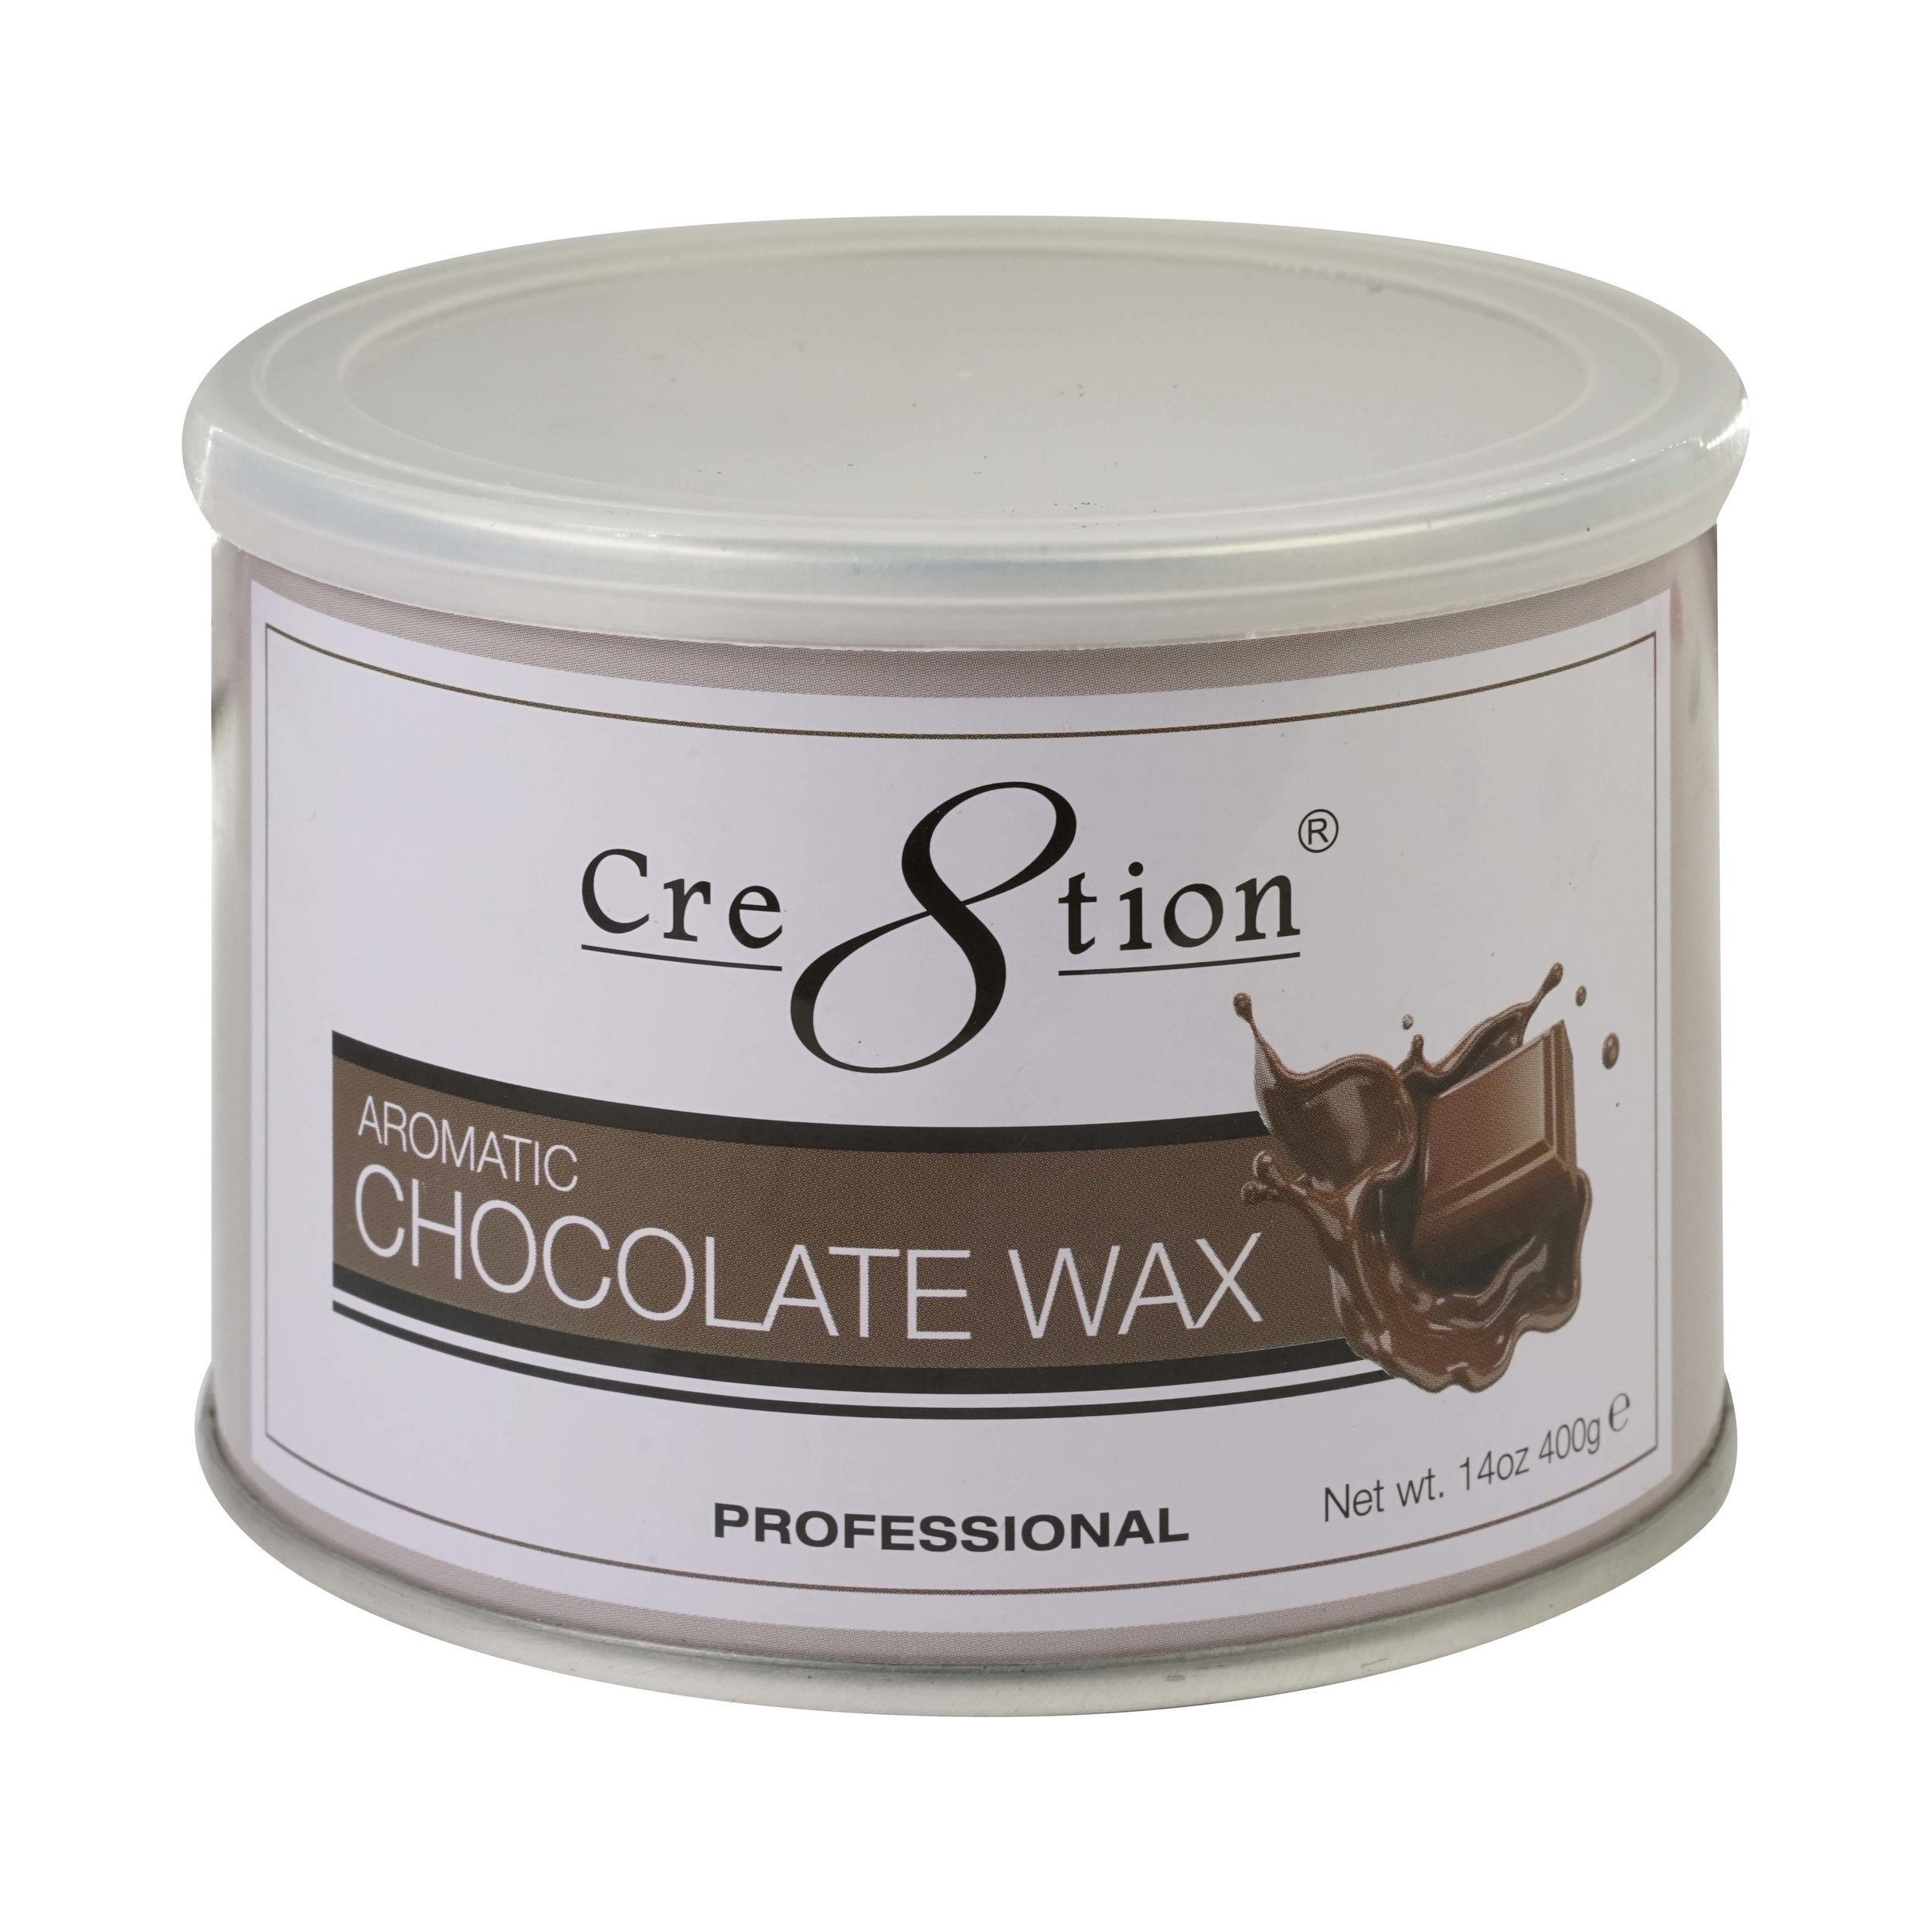 21137 - Chocolate wax  14oz 24 pcs./case, 72 cases/ pallet